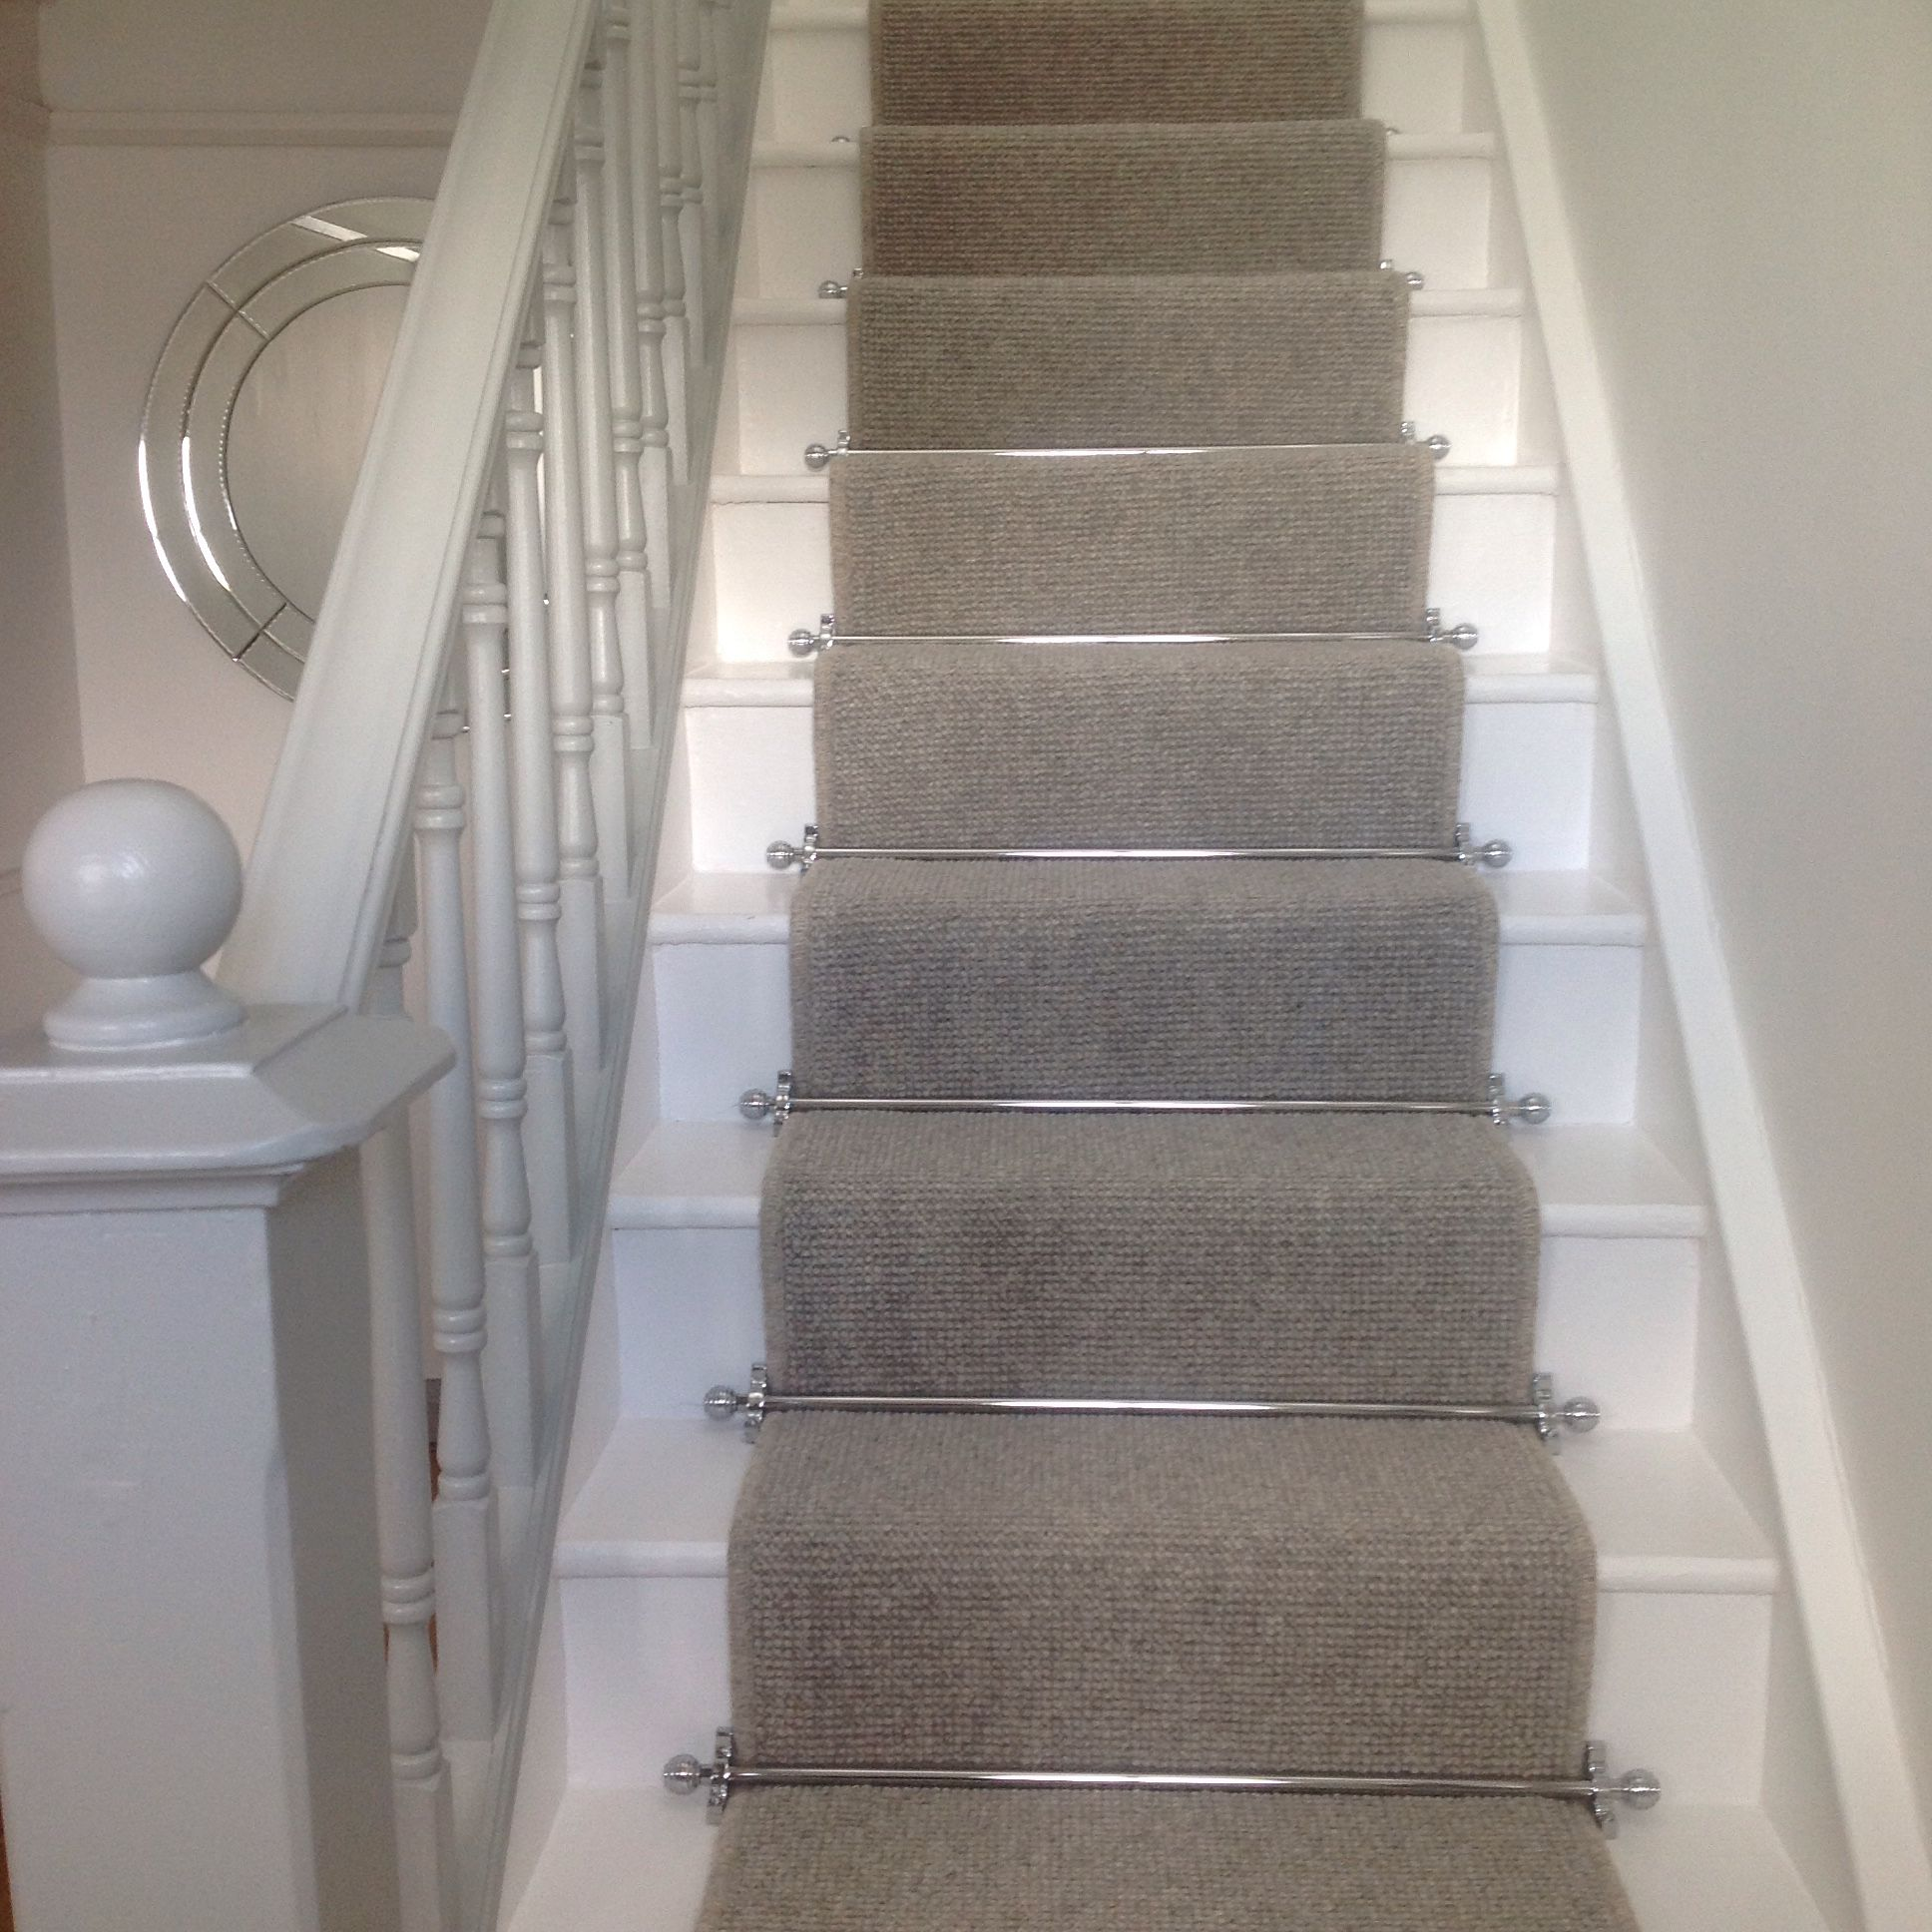 Runner On Stairs With Grey Carpet With Chrome Bars Hallway